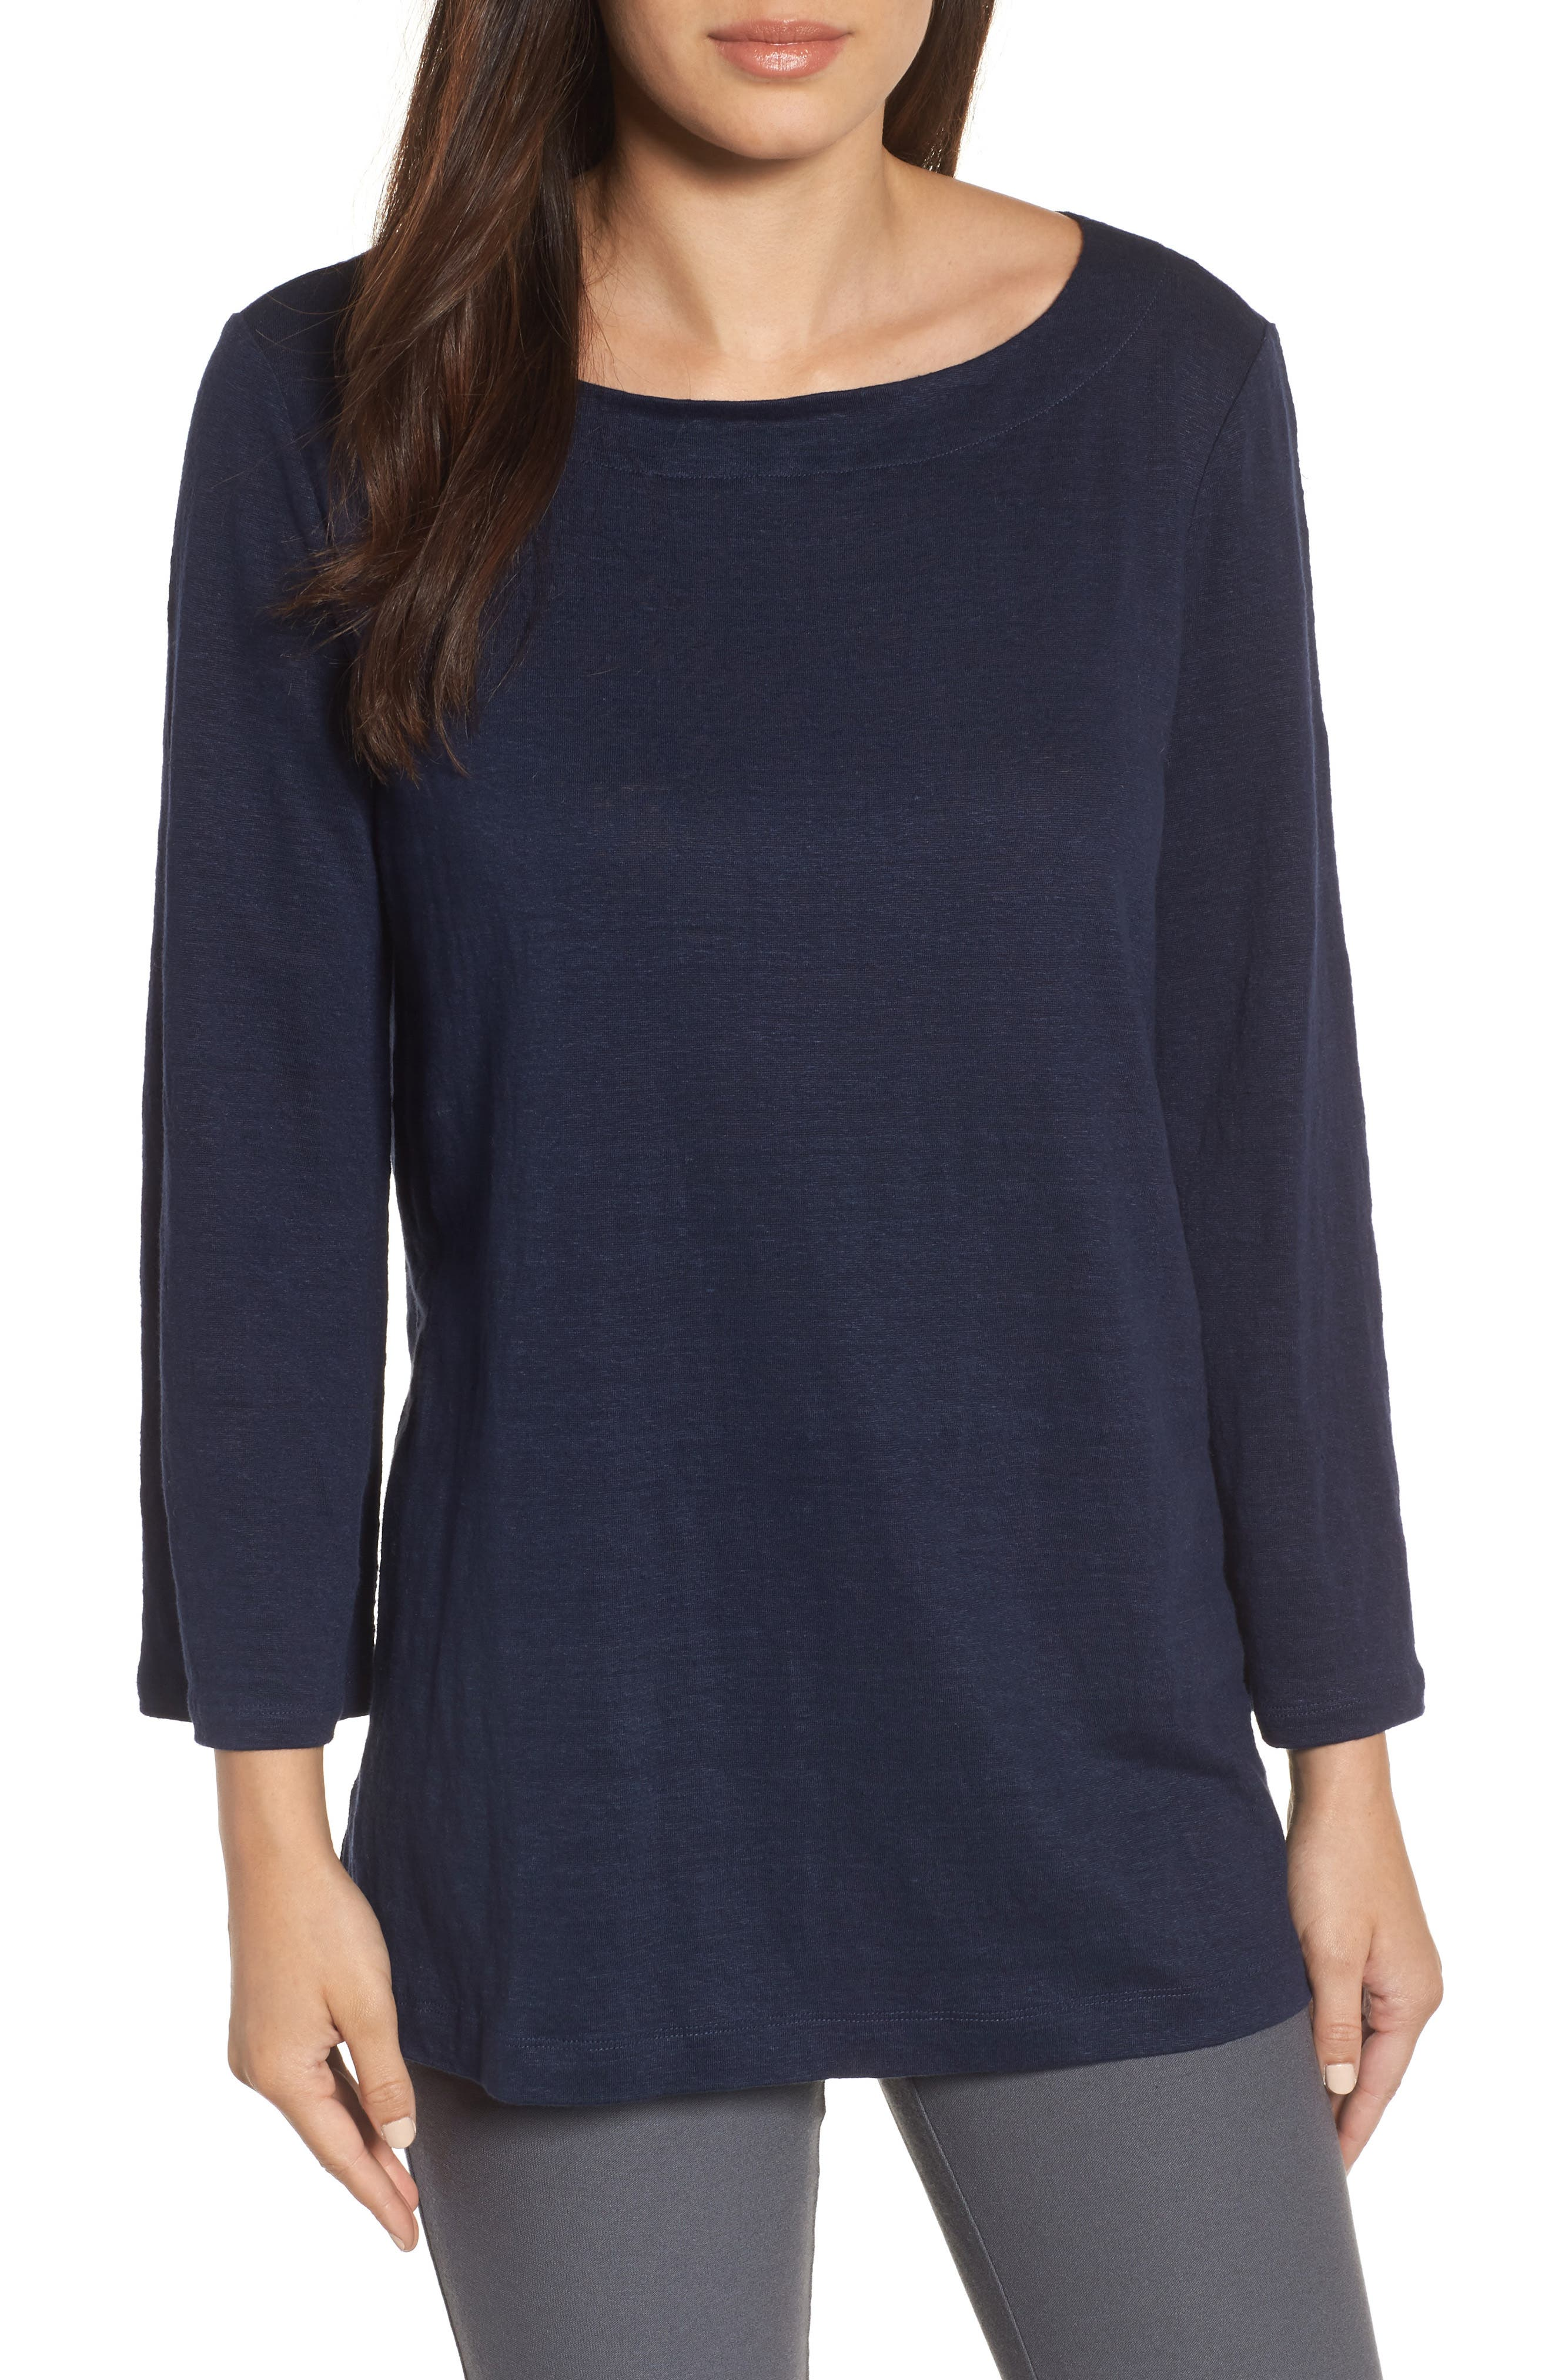 Organic Linen Bateau Neck Top,                             Main thumbnail 1, color,                             Midnight